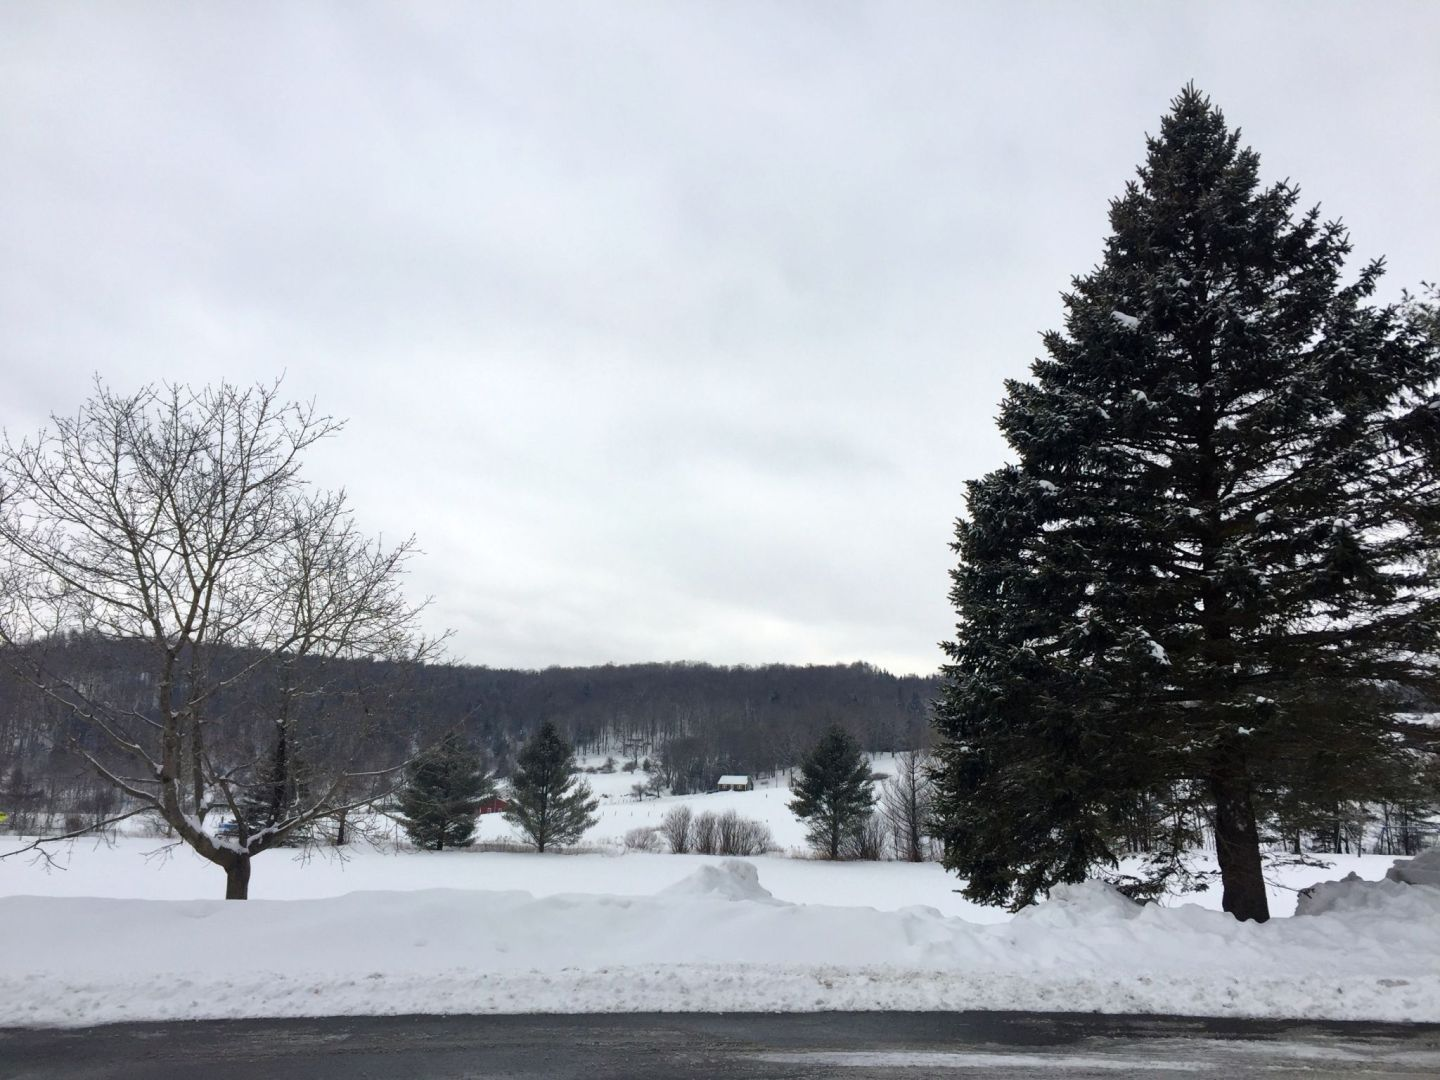 Wintery, snowy landscape in Wilmington Vermont